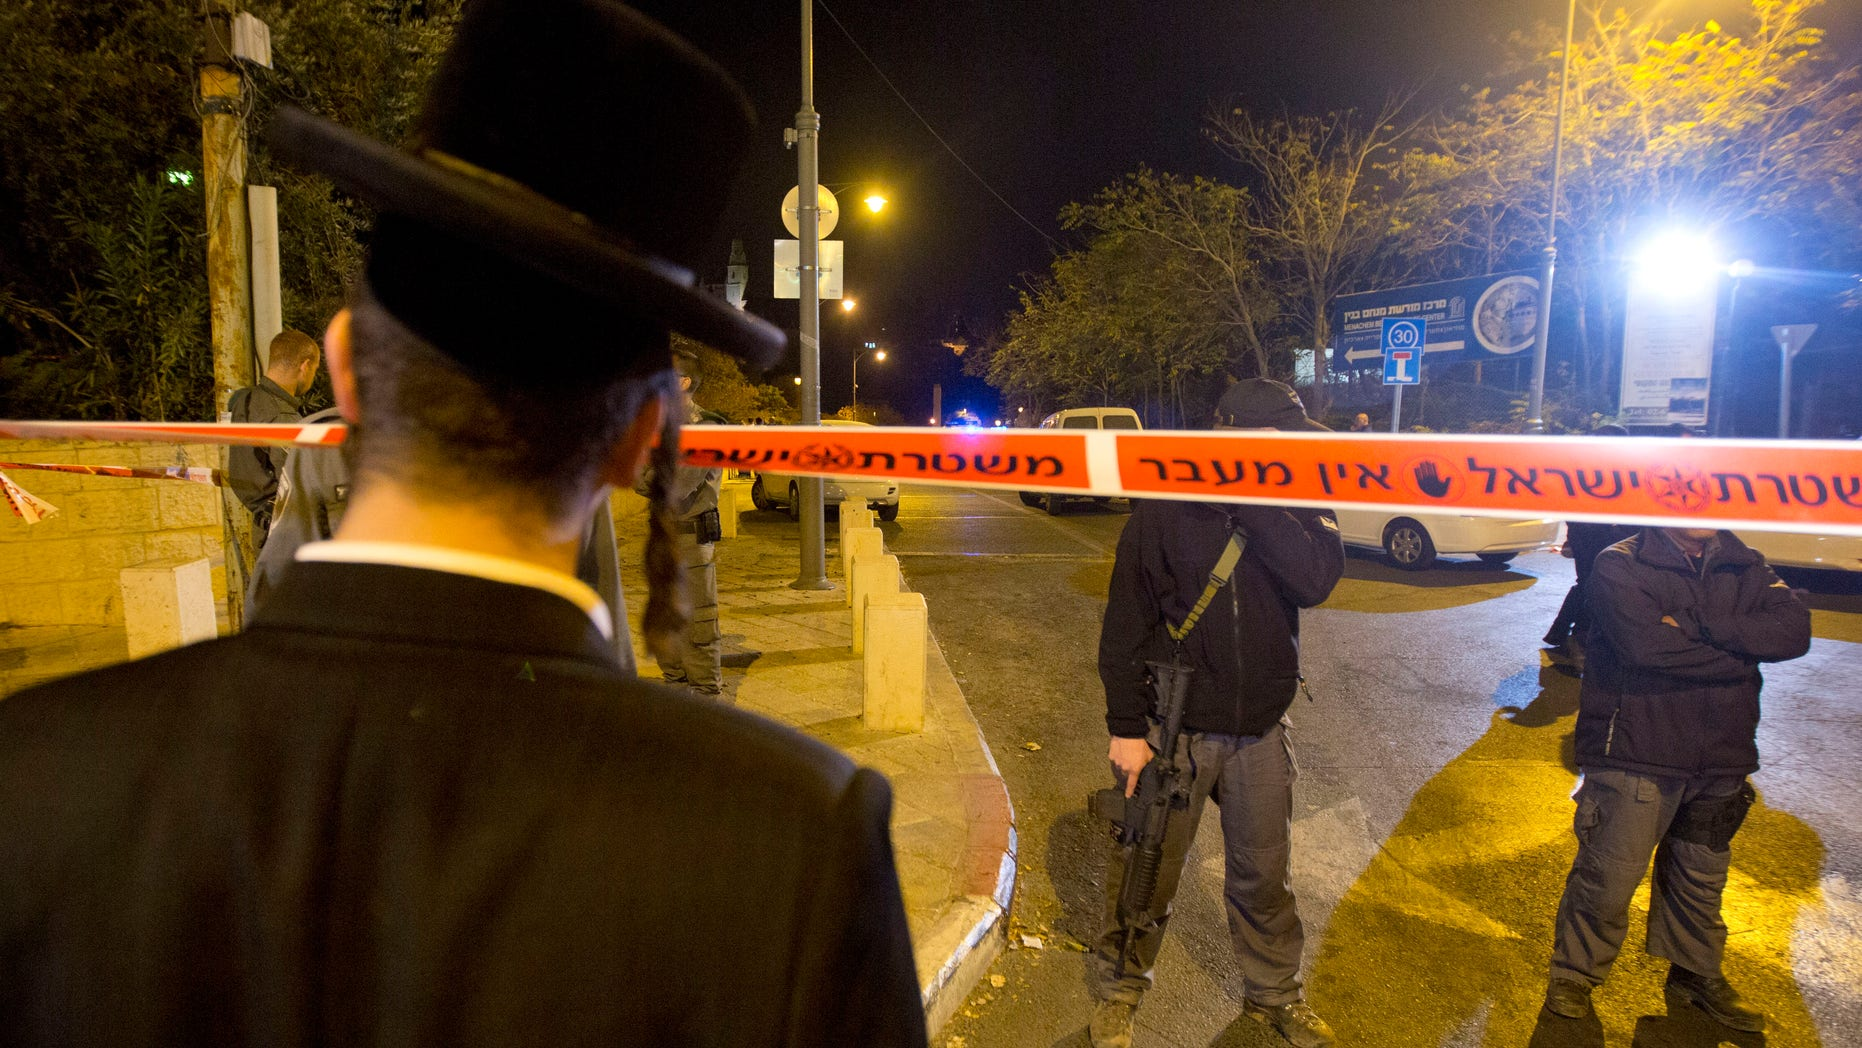 Oct 29, 2014: An ultra-Orthodox Jewish man looks as Israeli police officers stand guard at the scene of a shooting in Jerusalem